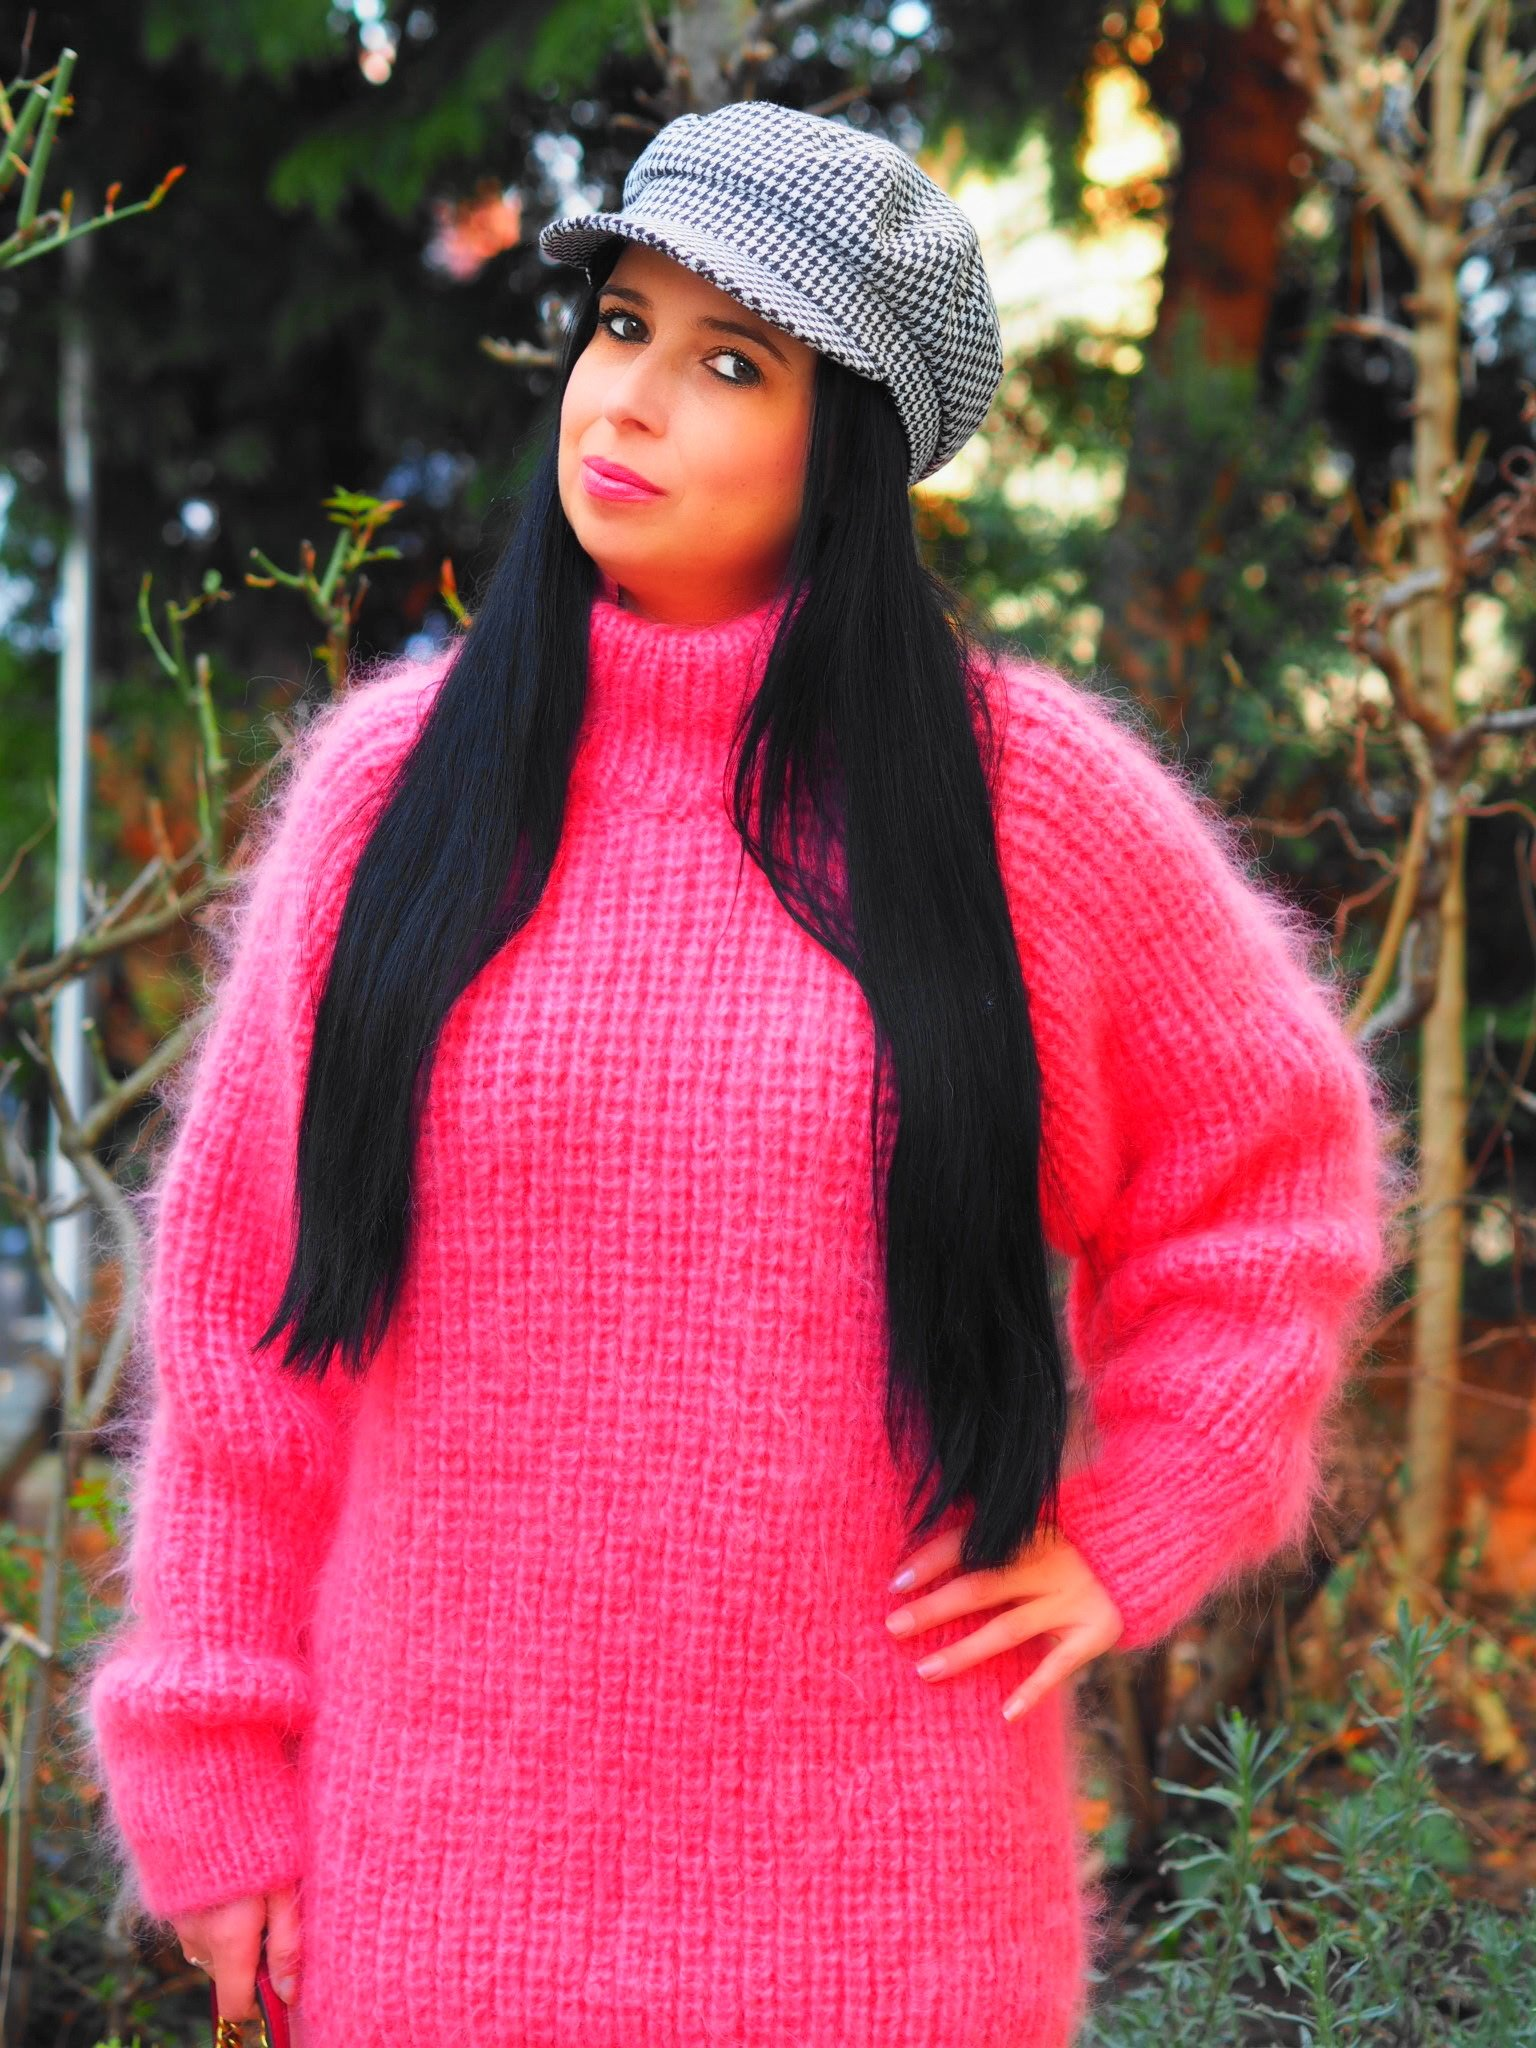 Today I show you on my blog a beautiful pink mohair sweater from SuperTanya and tell all about the characteristics of the luxurious wool